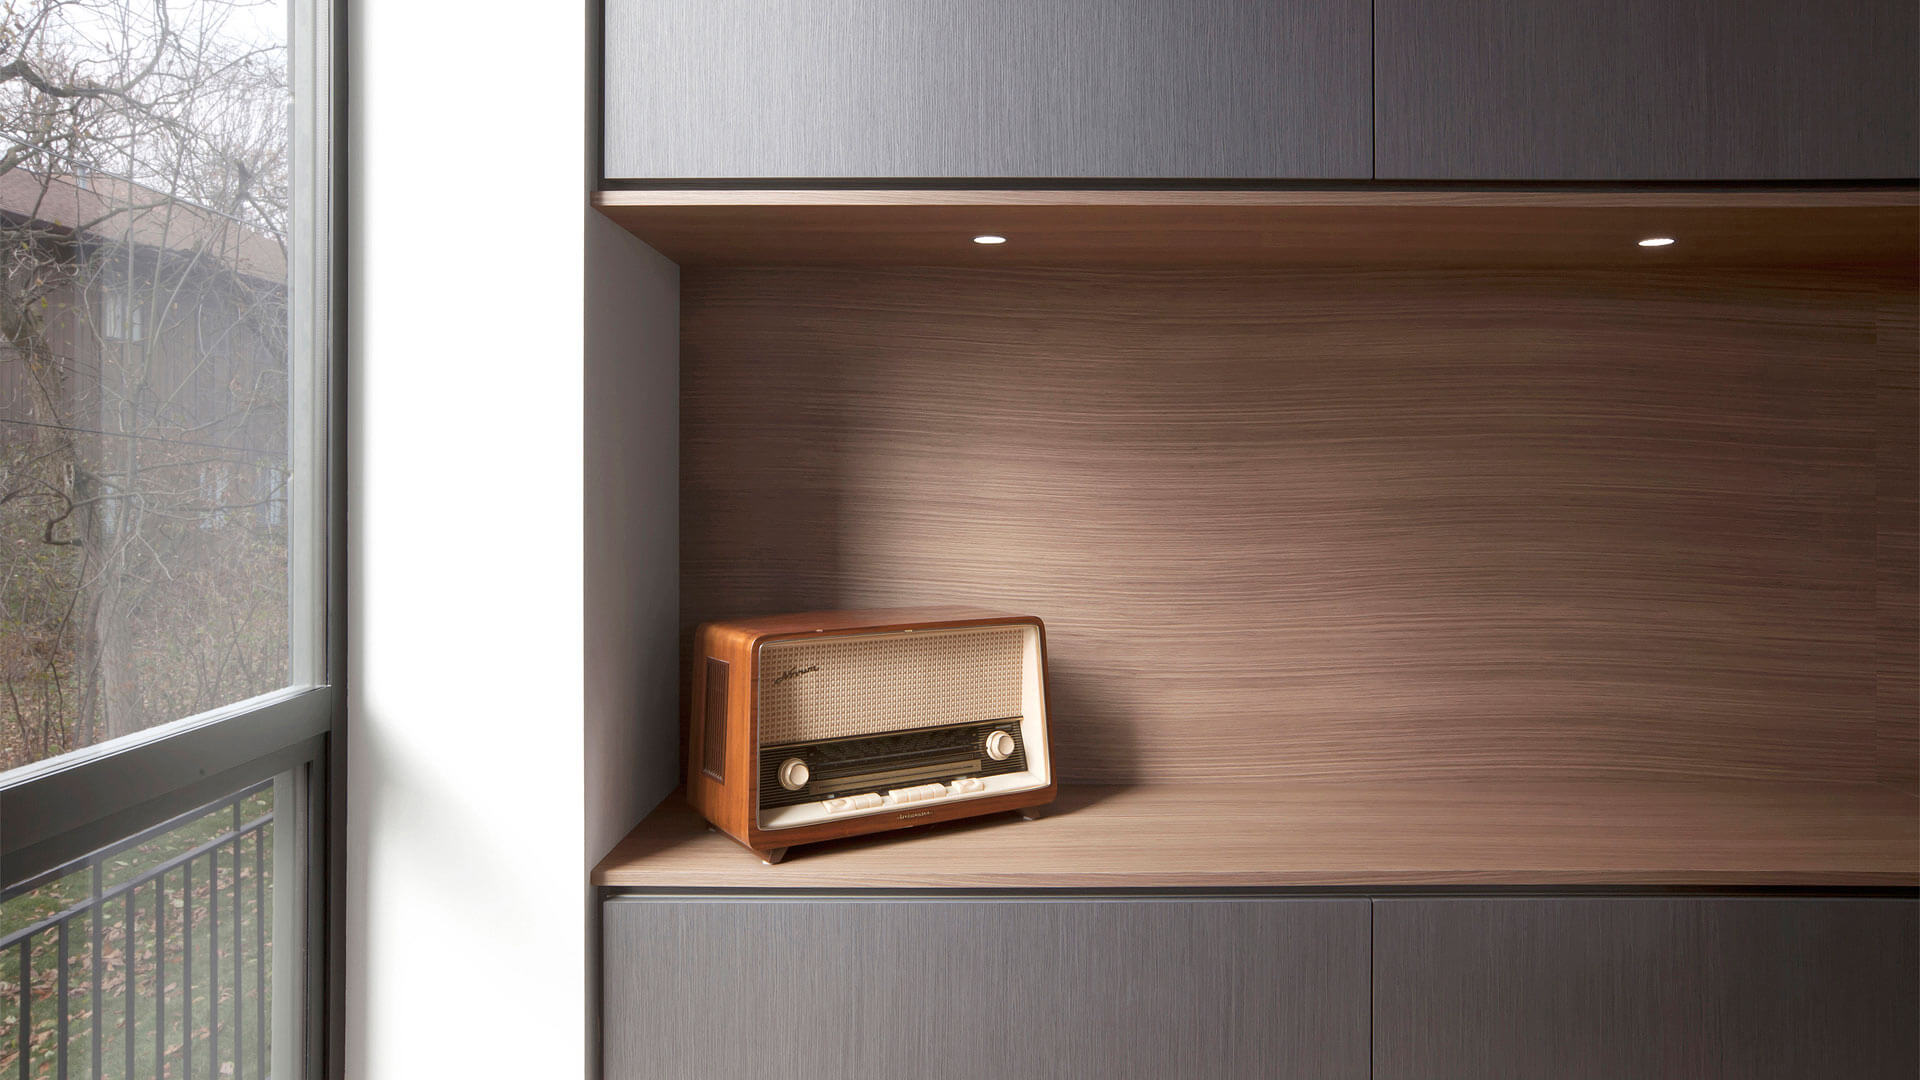 Vintage radio sits on modern built-in at living room storage wall - Fleetwood Windows - Minimalist Modern - Indian Head Park - Chicago, Illinois - HAUS   Architecture For Modern Lifestyles, Christopher Short, Indianapolis Architect with Joe Trojanowski